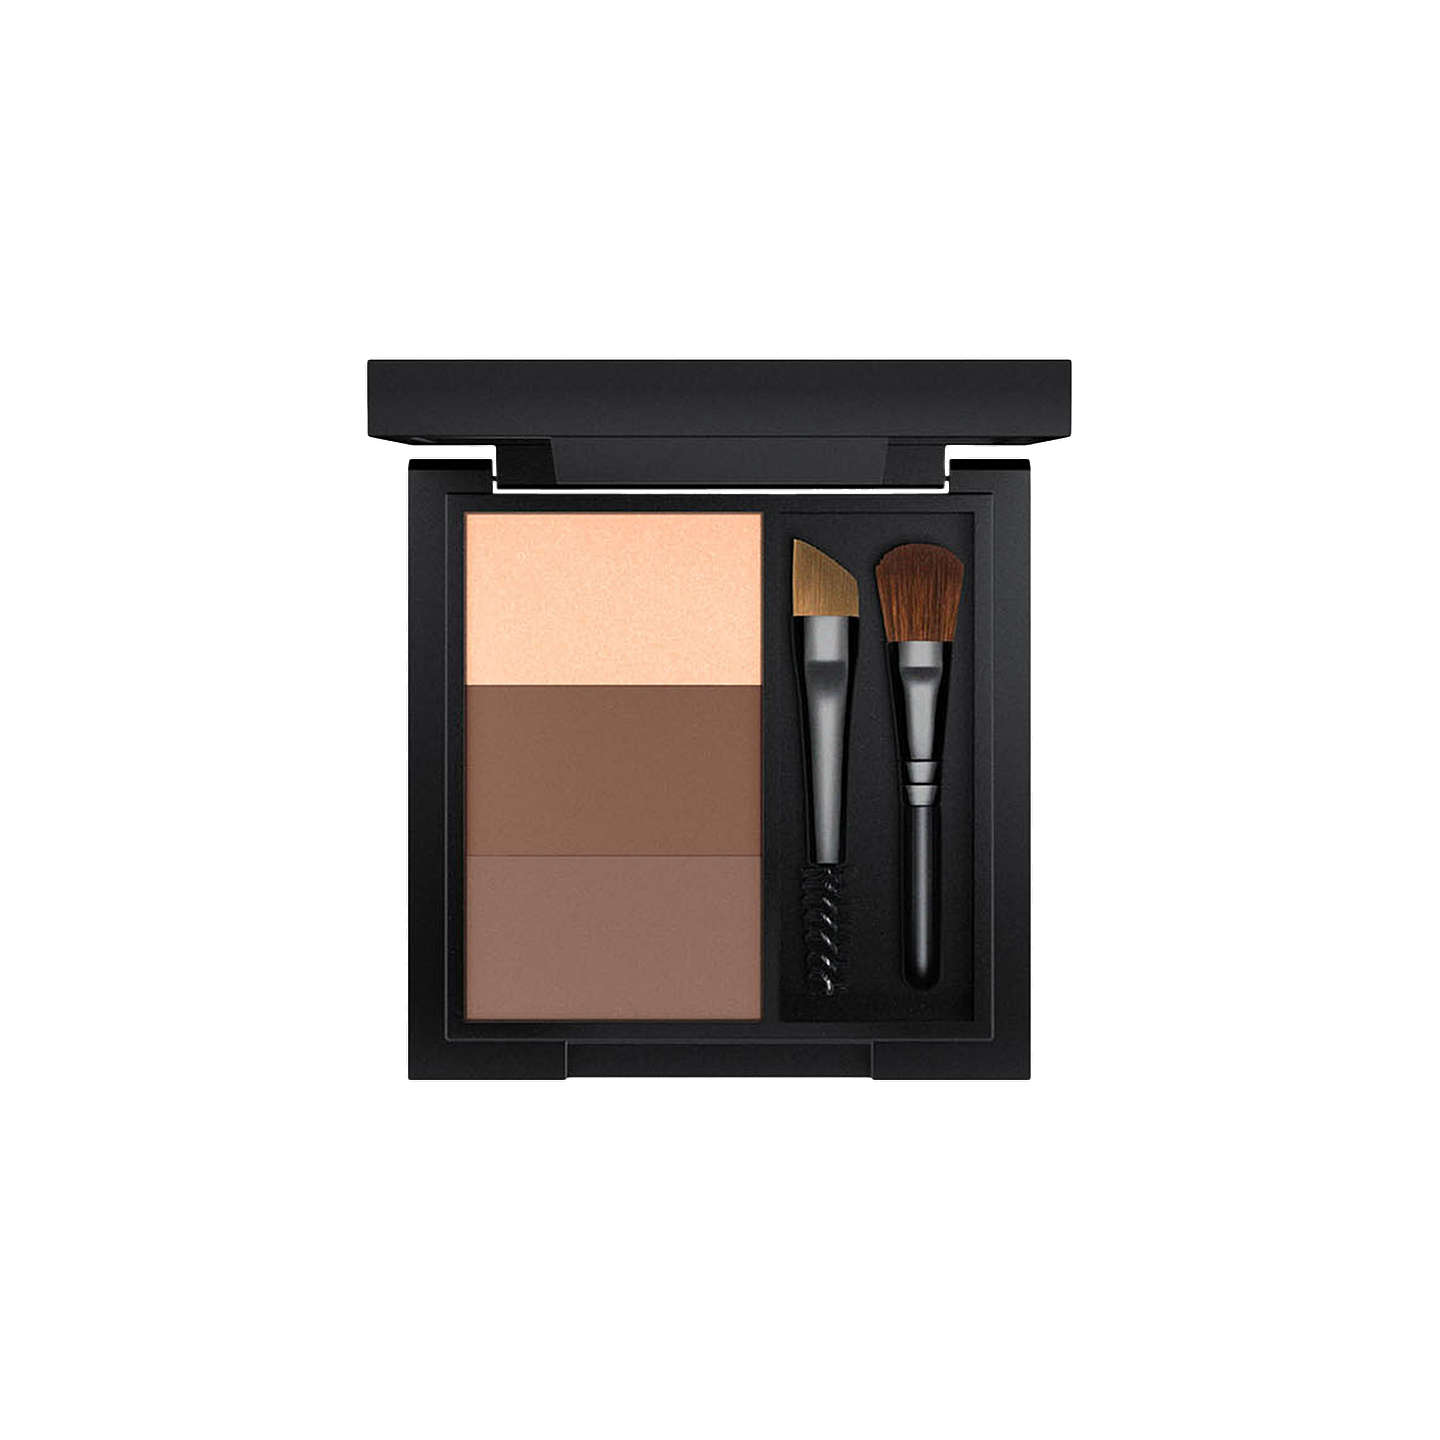 BuyMAC Great Brows, Lingering Online at johnlewis.com